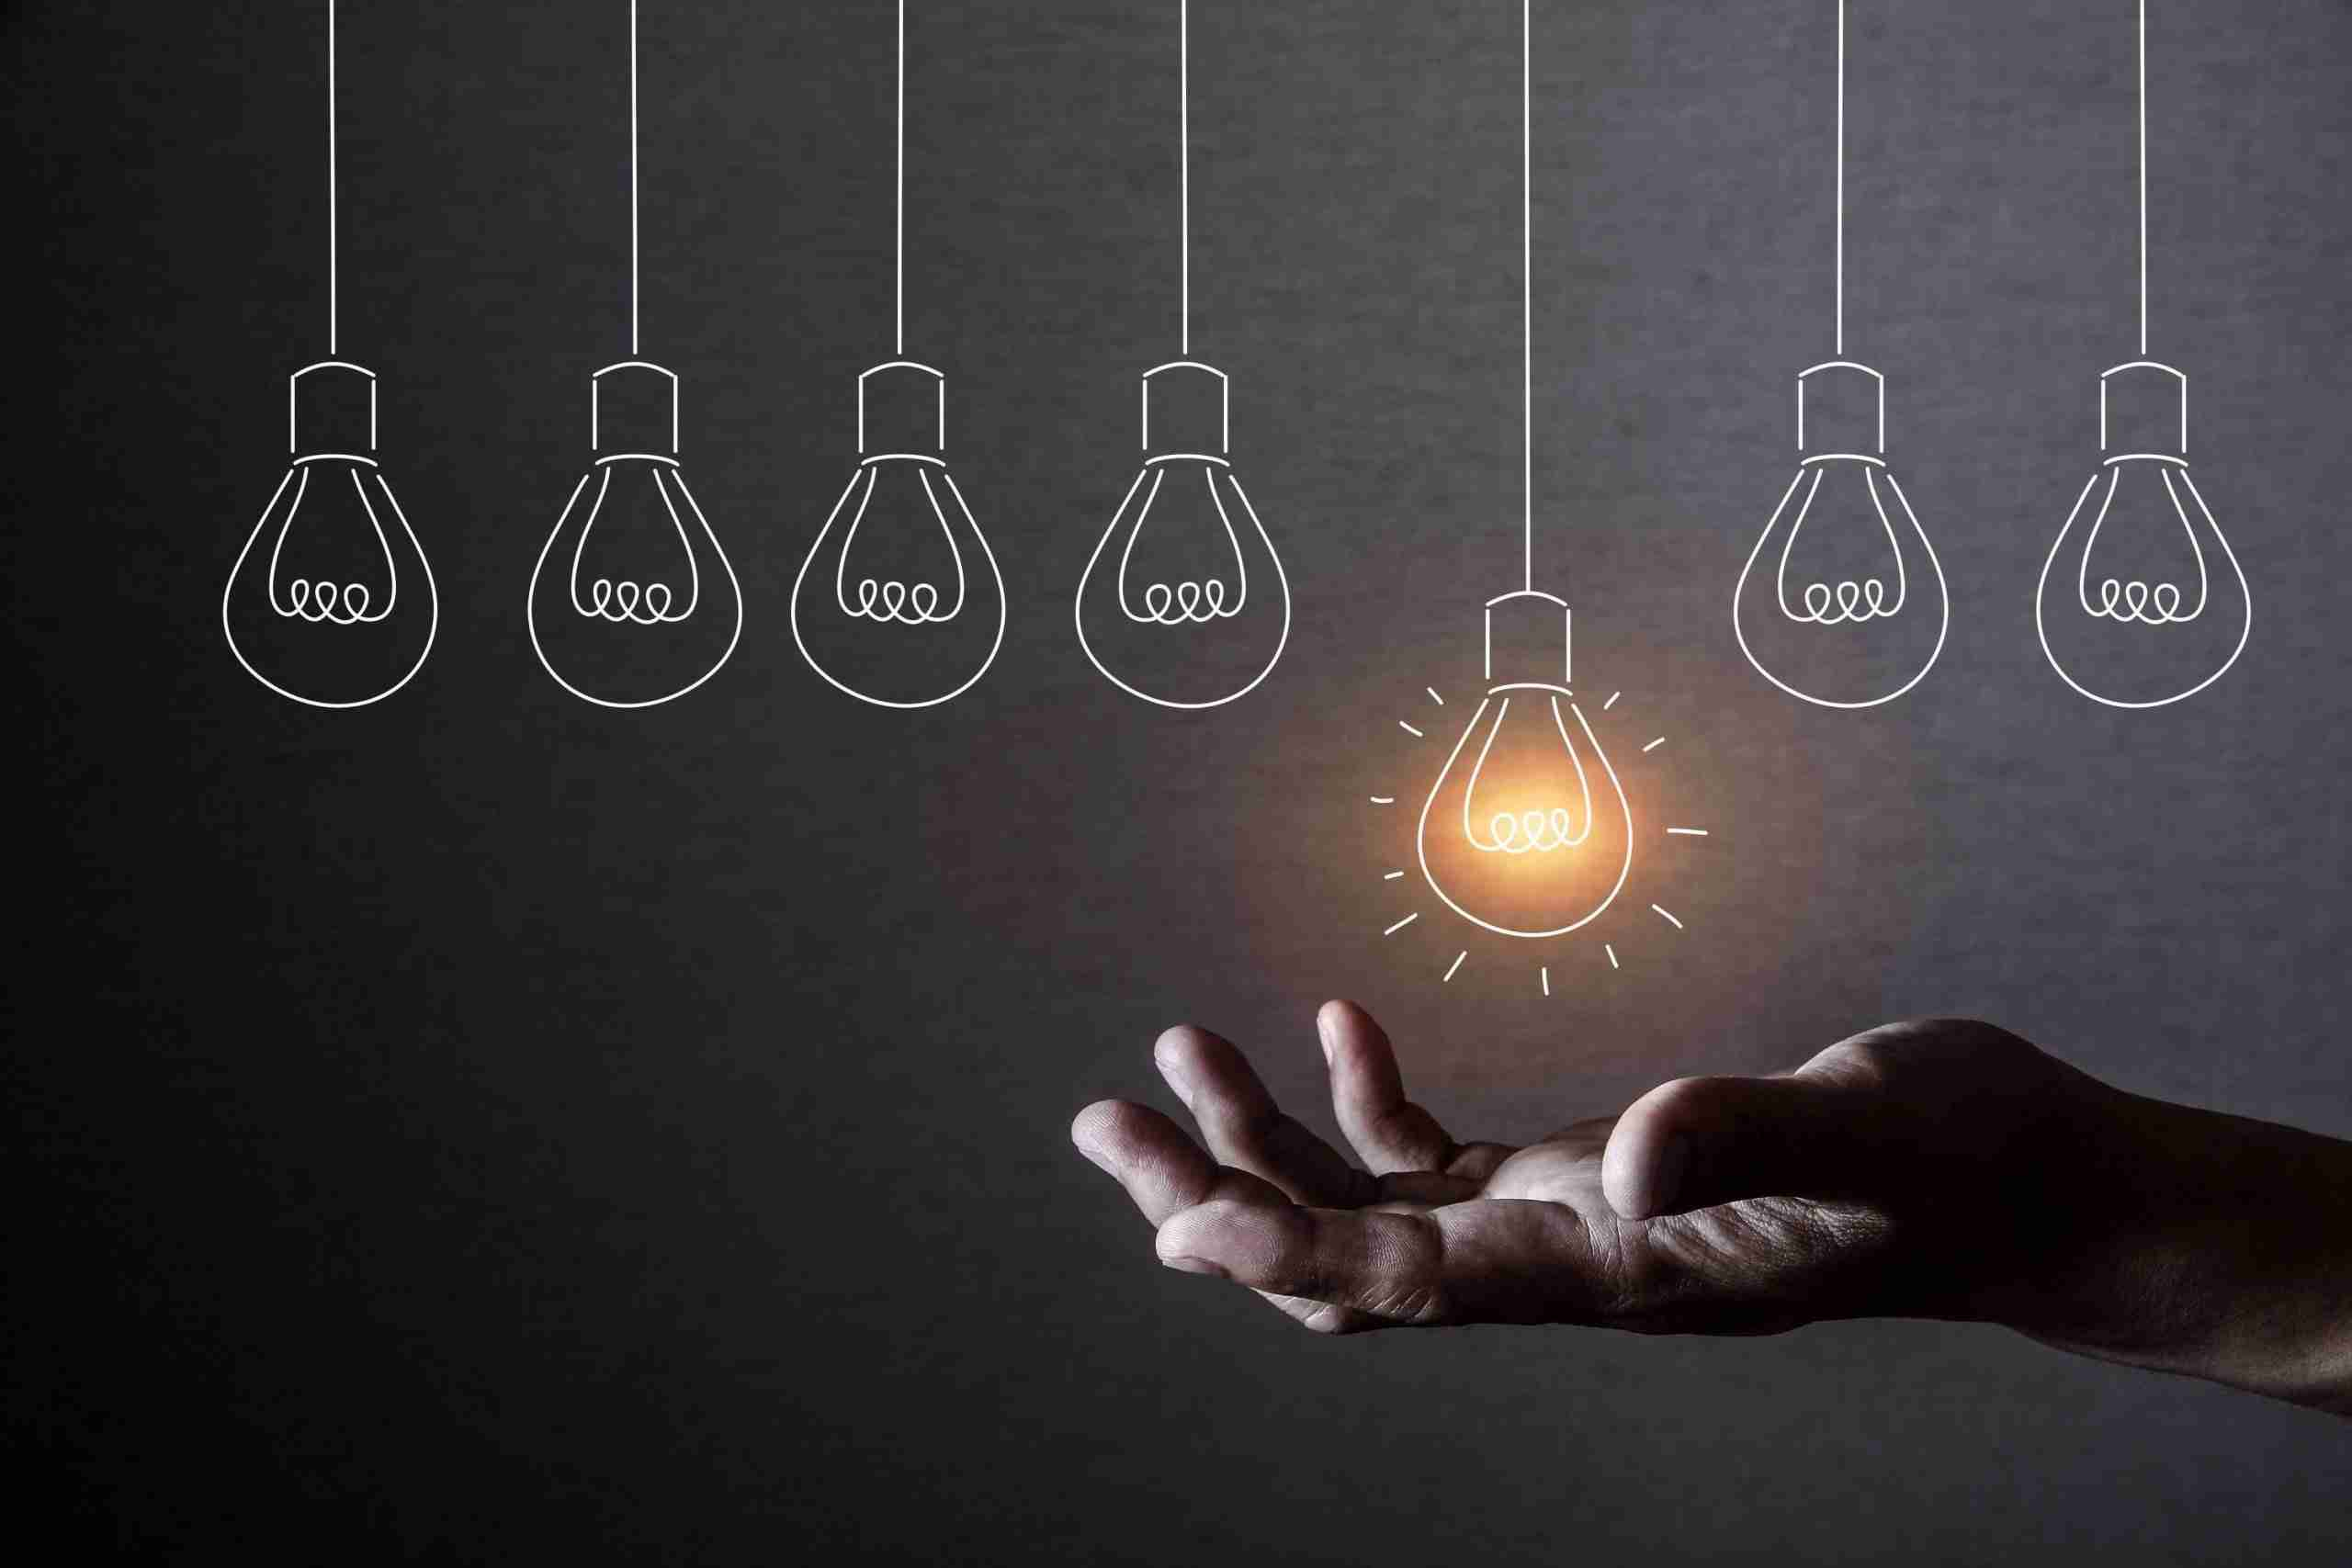 A picture of a set of hanging lightbulbs, with a hand situated underneath to grab them. This signifies the importance of capturing the insights and ideas of staff and customers in crafting an effective innovation strategy.